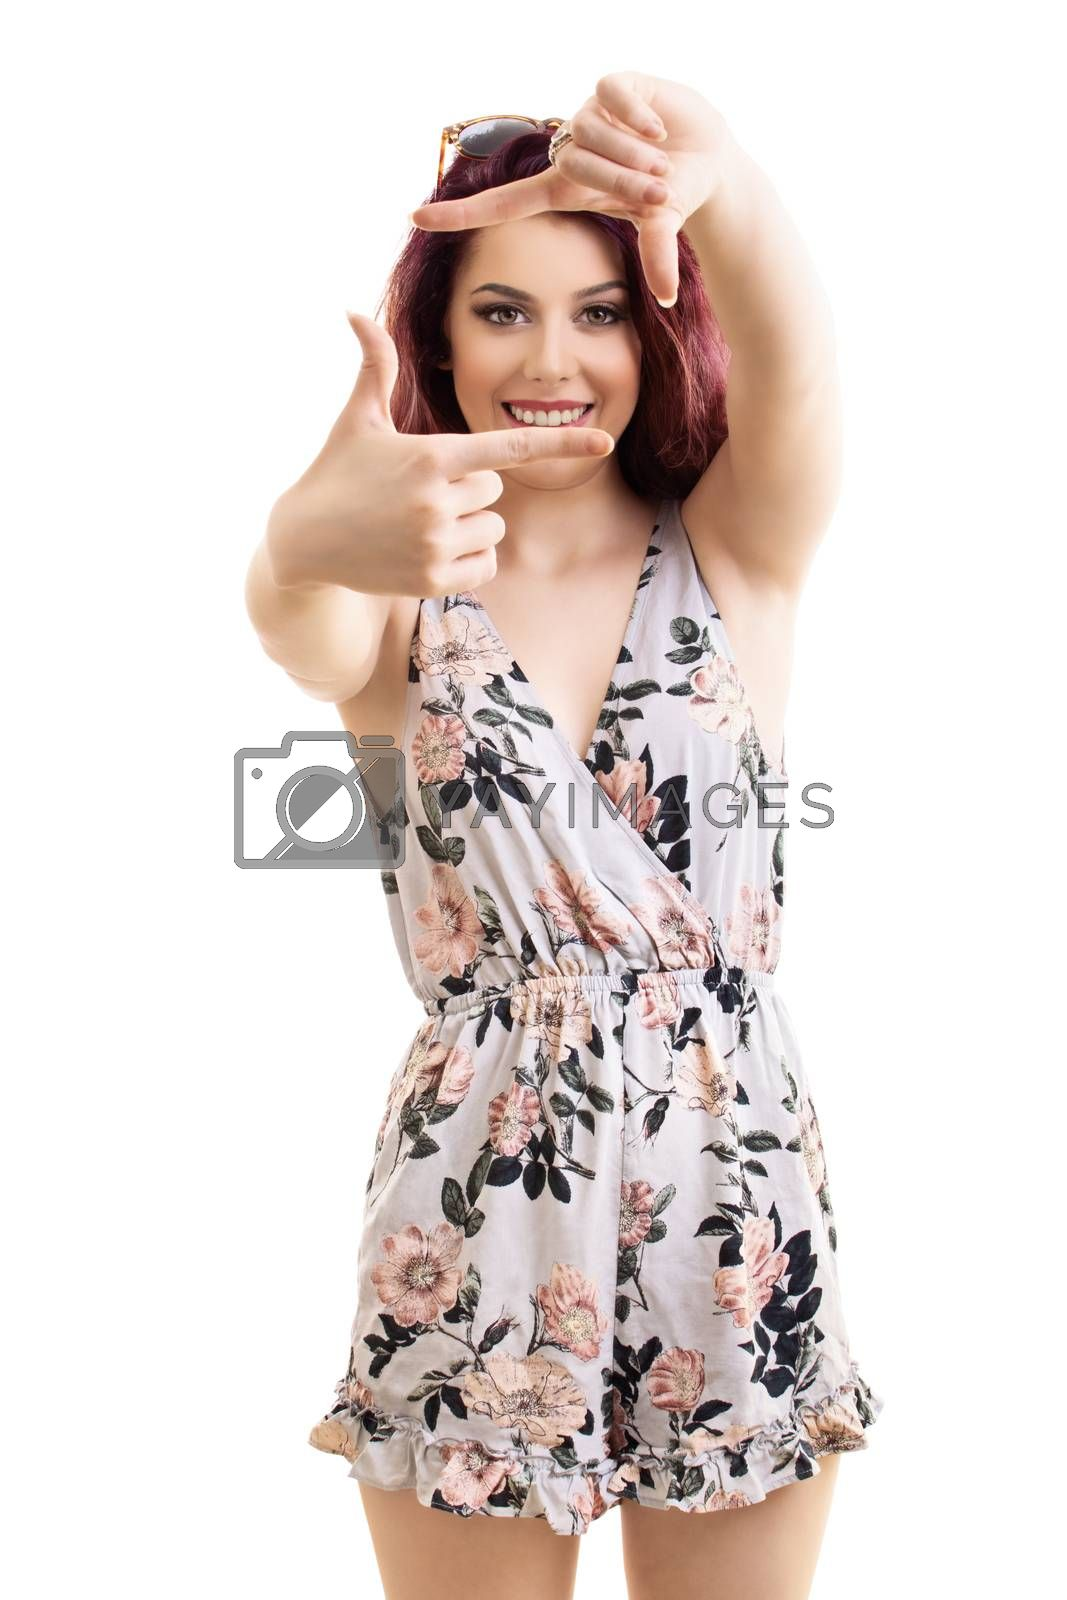 Portrait of a fashionable young smiling attractive woman making a camera frame with her hands and fingers, isolated on white background. Copy Space. Creativity and photography concept.